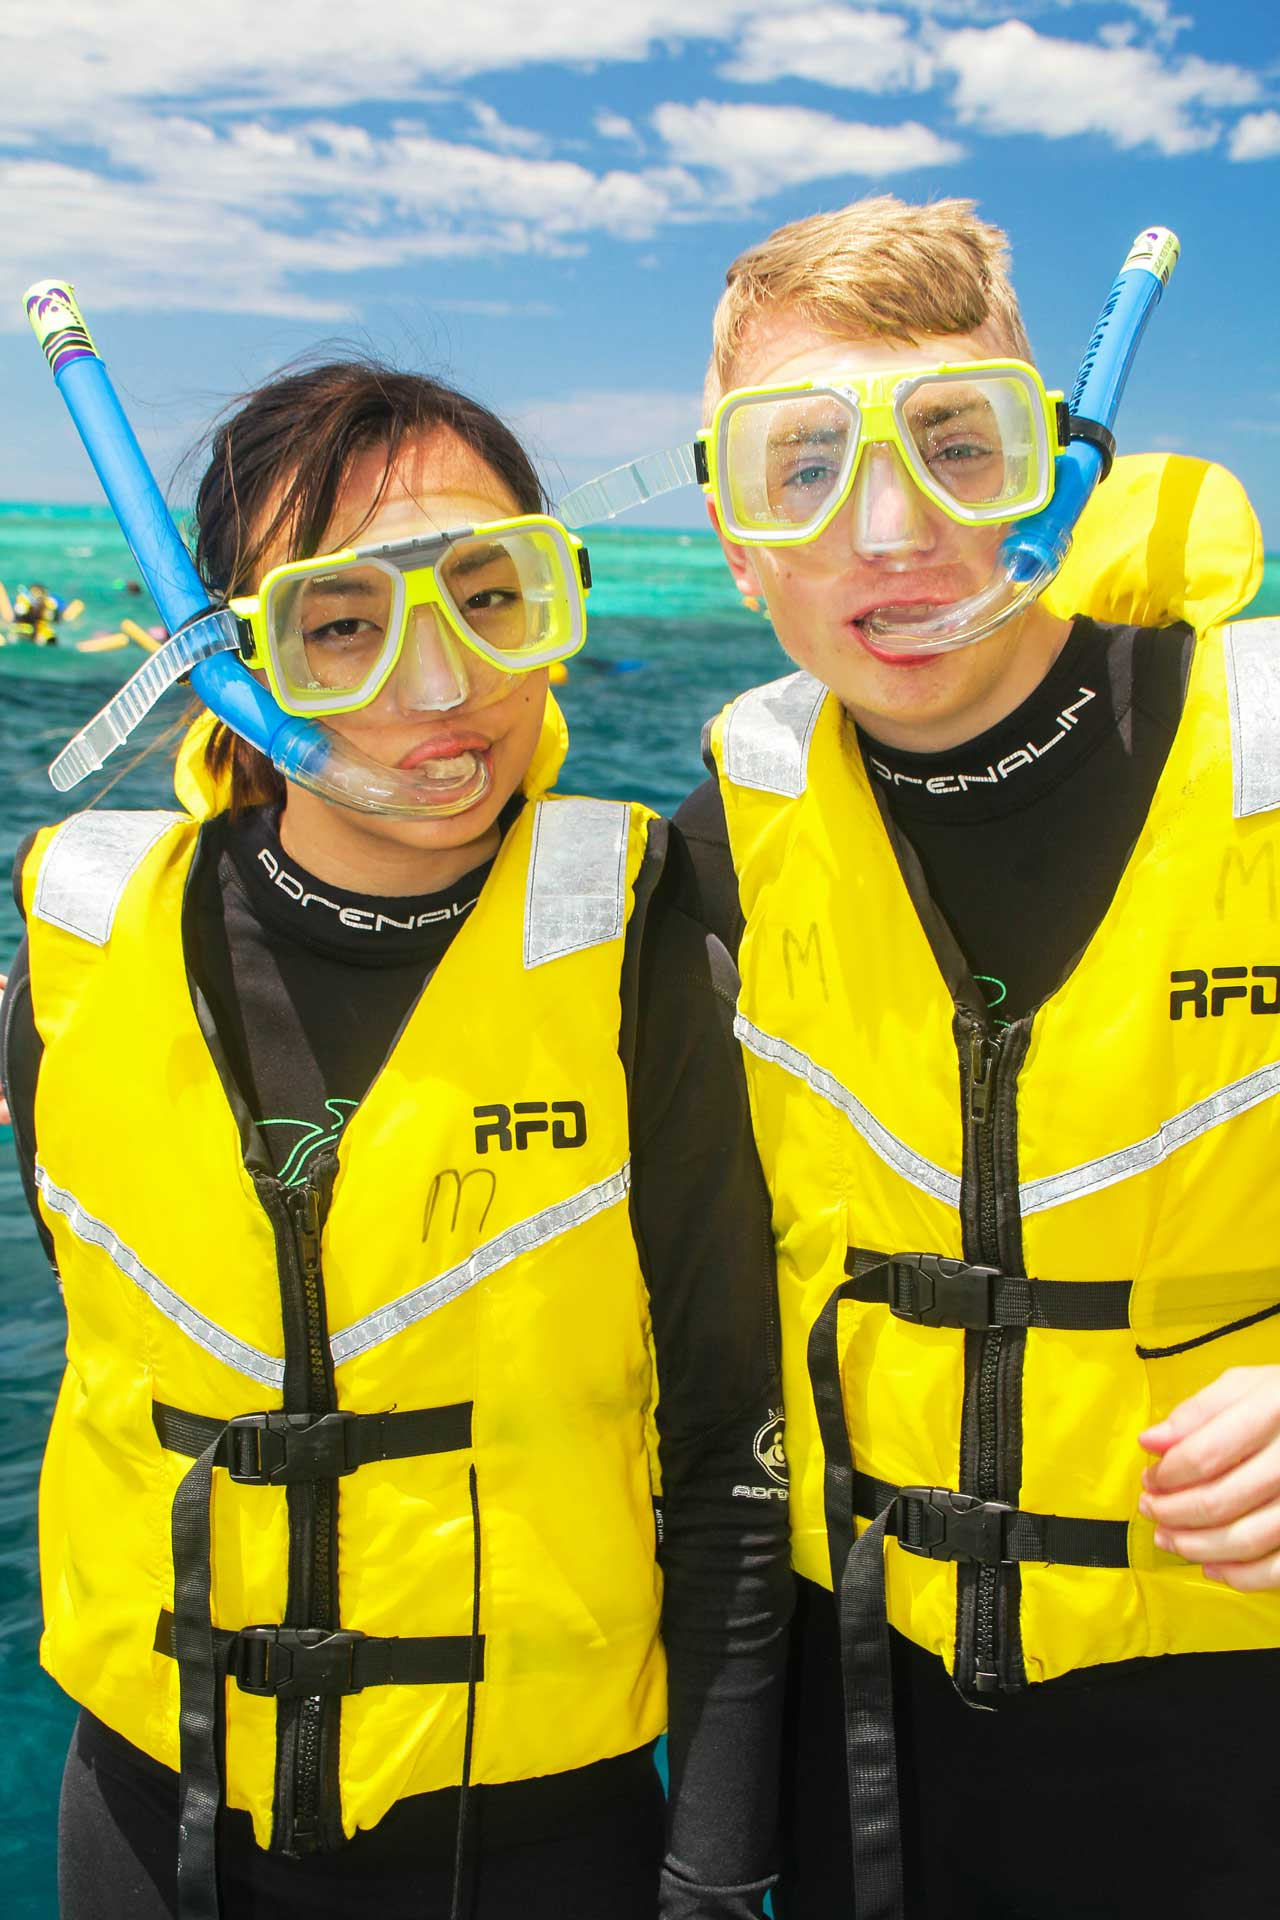 Leonie and Mattias looking utterly fashionable at the Great Barrier Reef